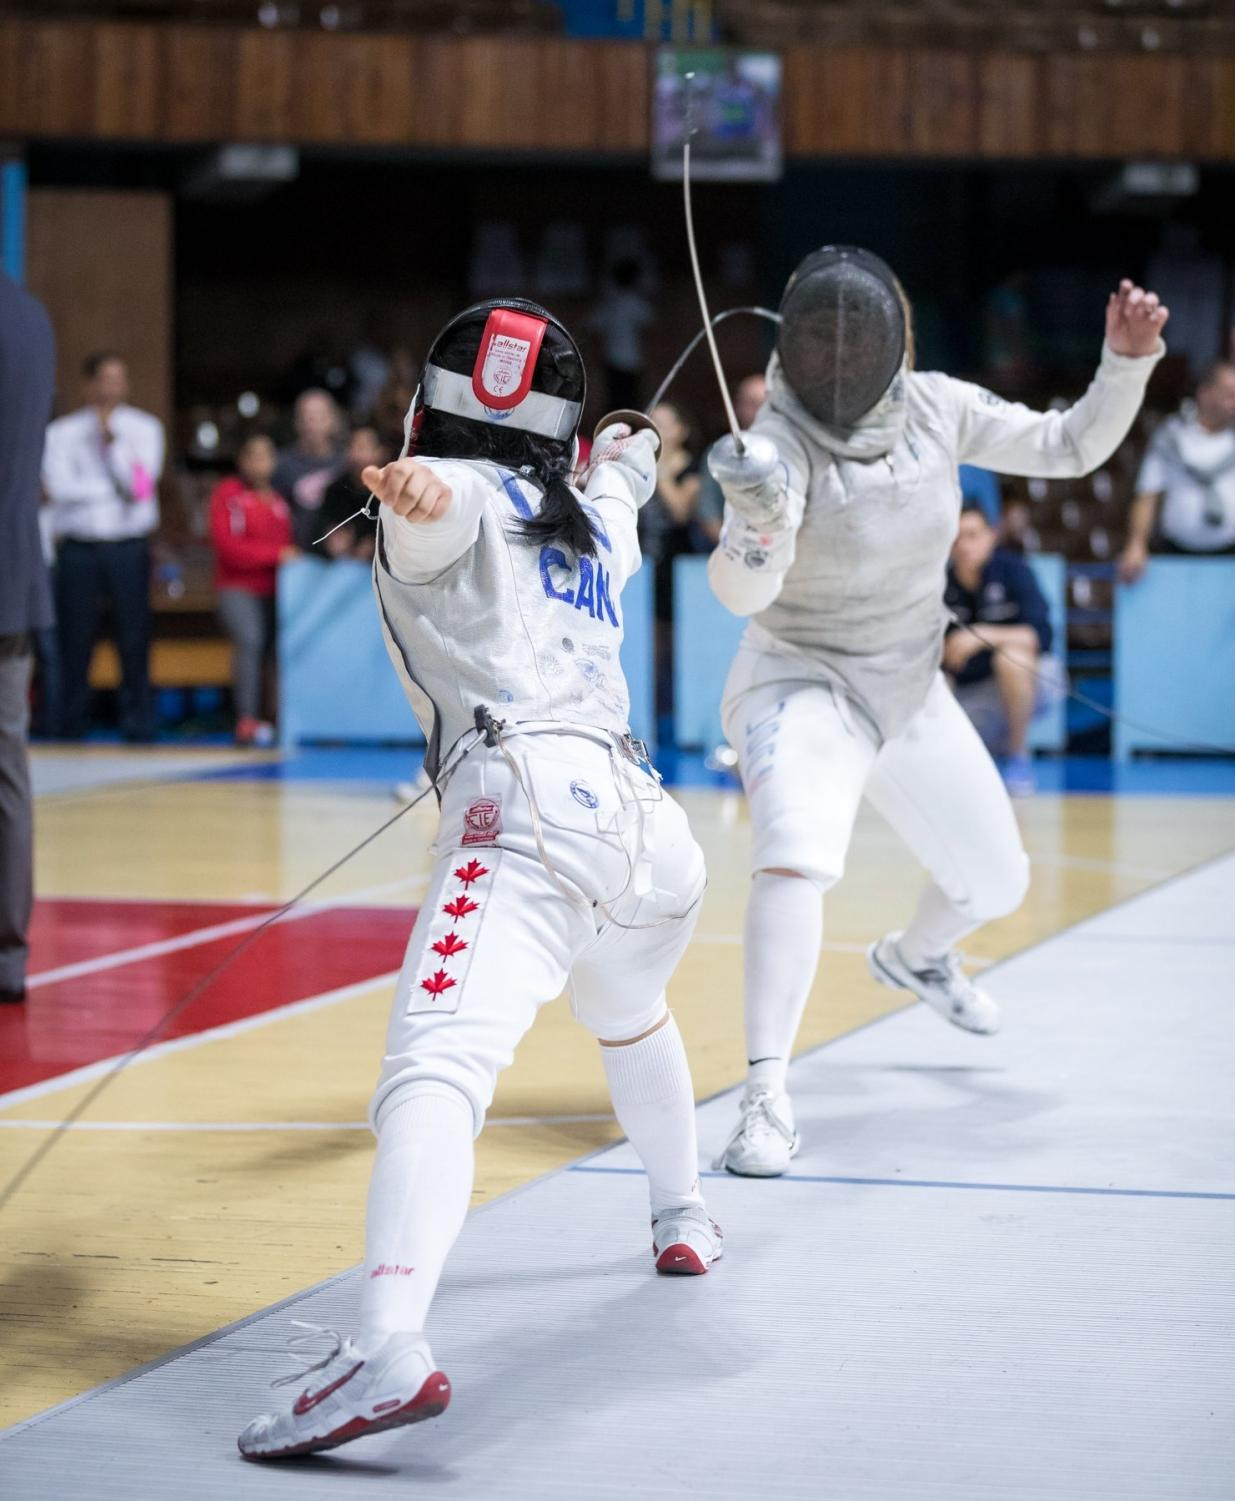 Senior Cindy Liu, left, lungs towards her opponent during her fencing match for Canada.